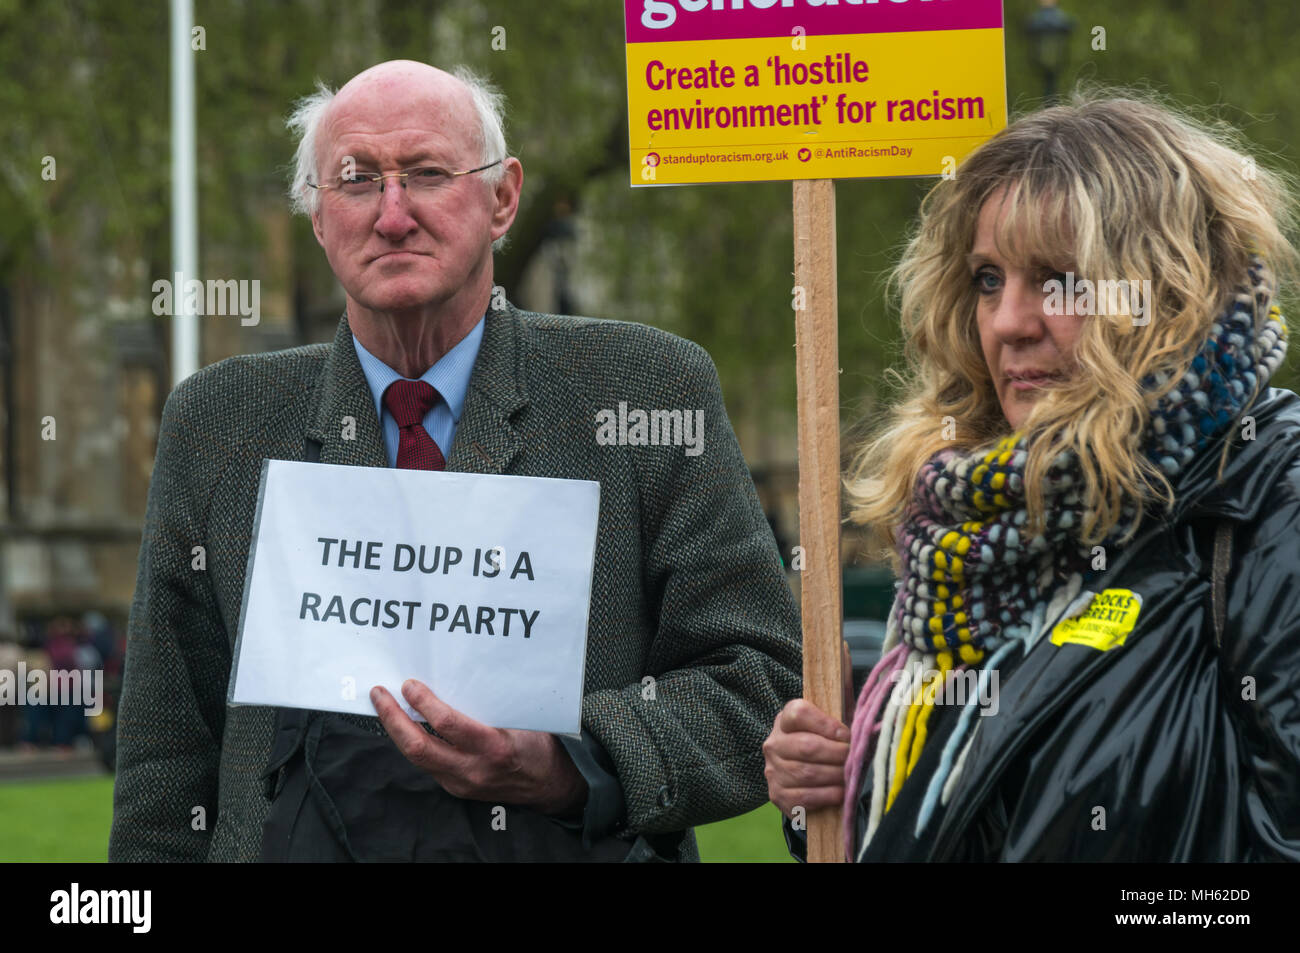 London, UK. 30th April 2018.  Irish activist Jim Curran holds a poster 'The DUP is a Racist Party' at the protest in support of the petition calling for an end to the deportations of migrants in the 'Windrush generation' who arrived in Britain between 1948 and 1971. It calls on the government to change the burden of proof which means they are now required to prove their right to remain, and to provide compensation for any loss and hurt.. re for many years, paying taxe Credit: Peter Marshall/Alamy Live News - Stock Image